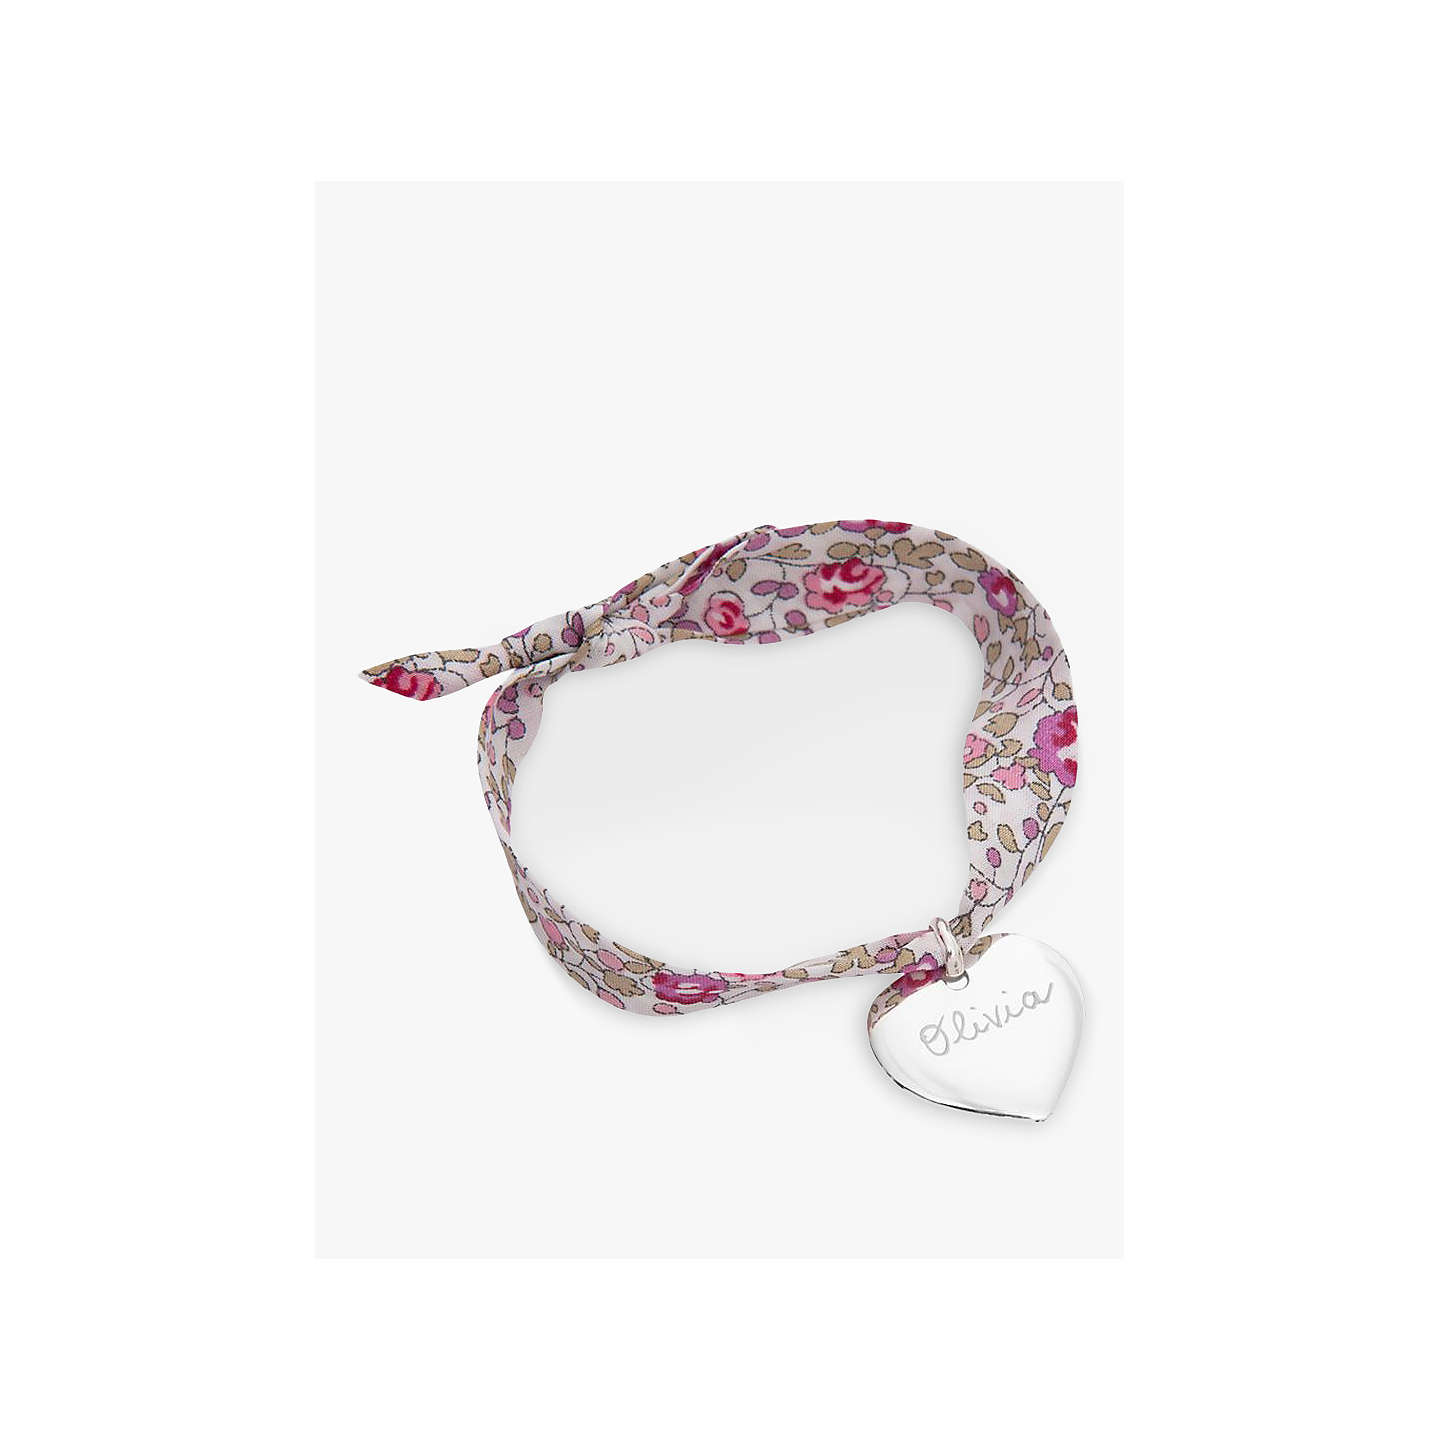 best heart s friends claire pink bracelet us bracelets